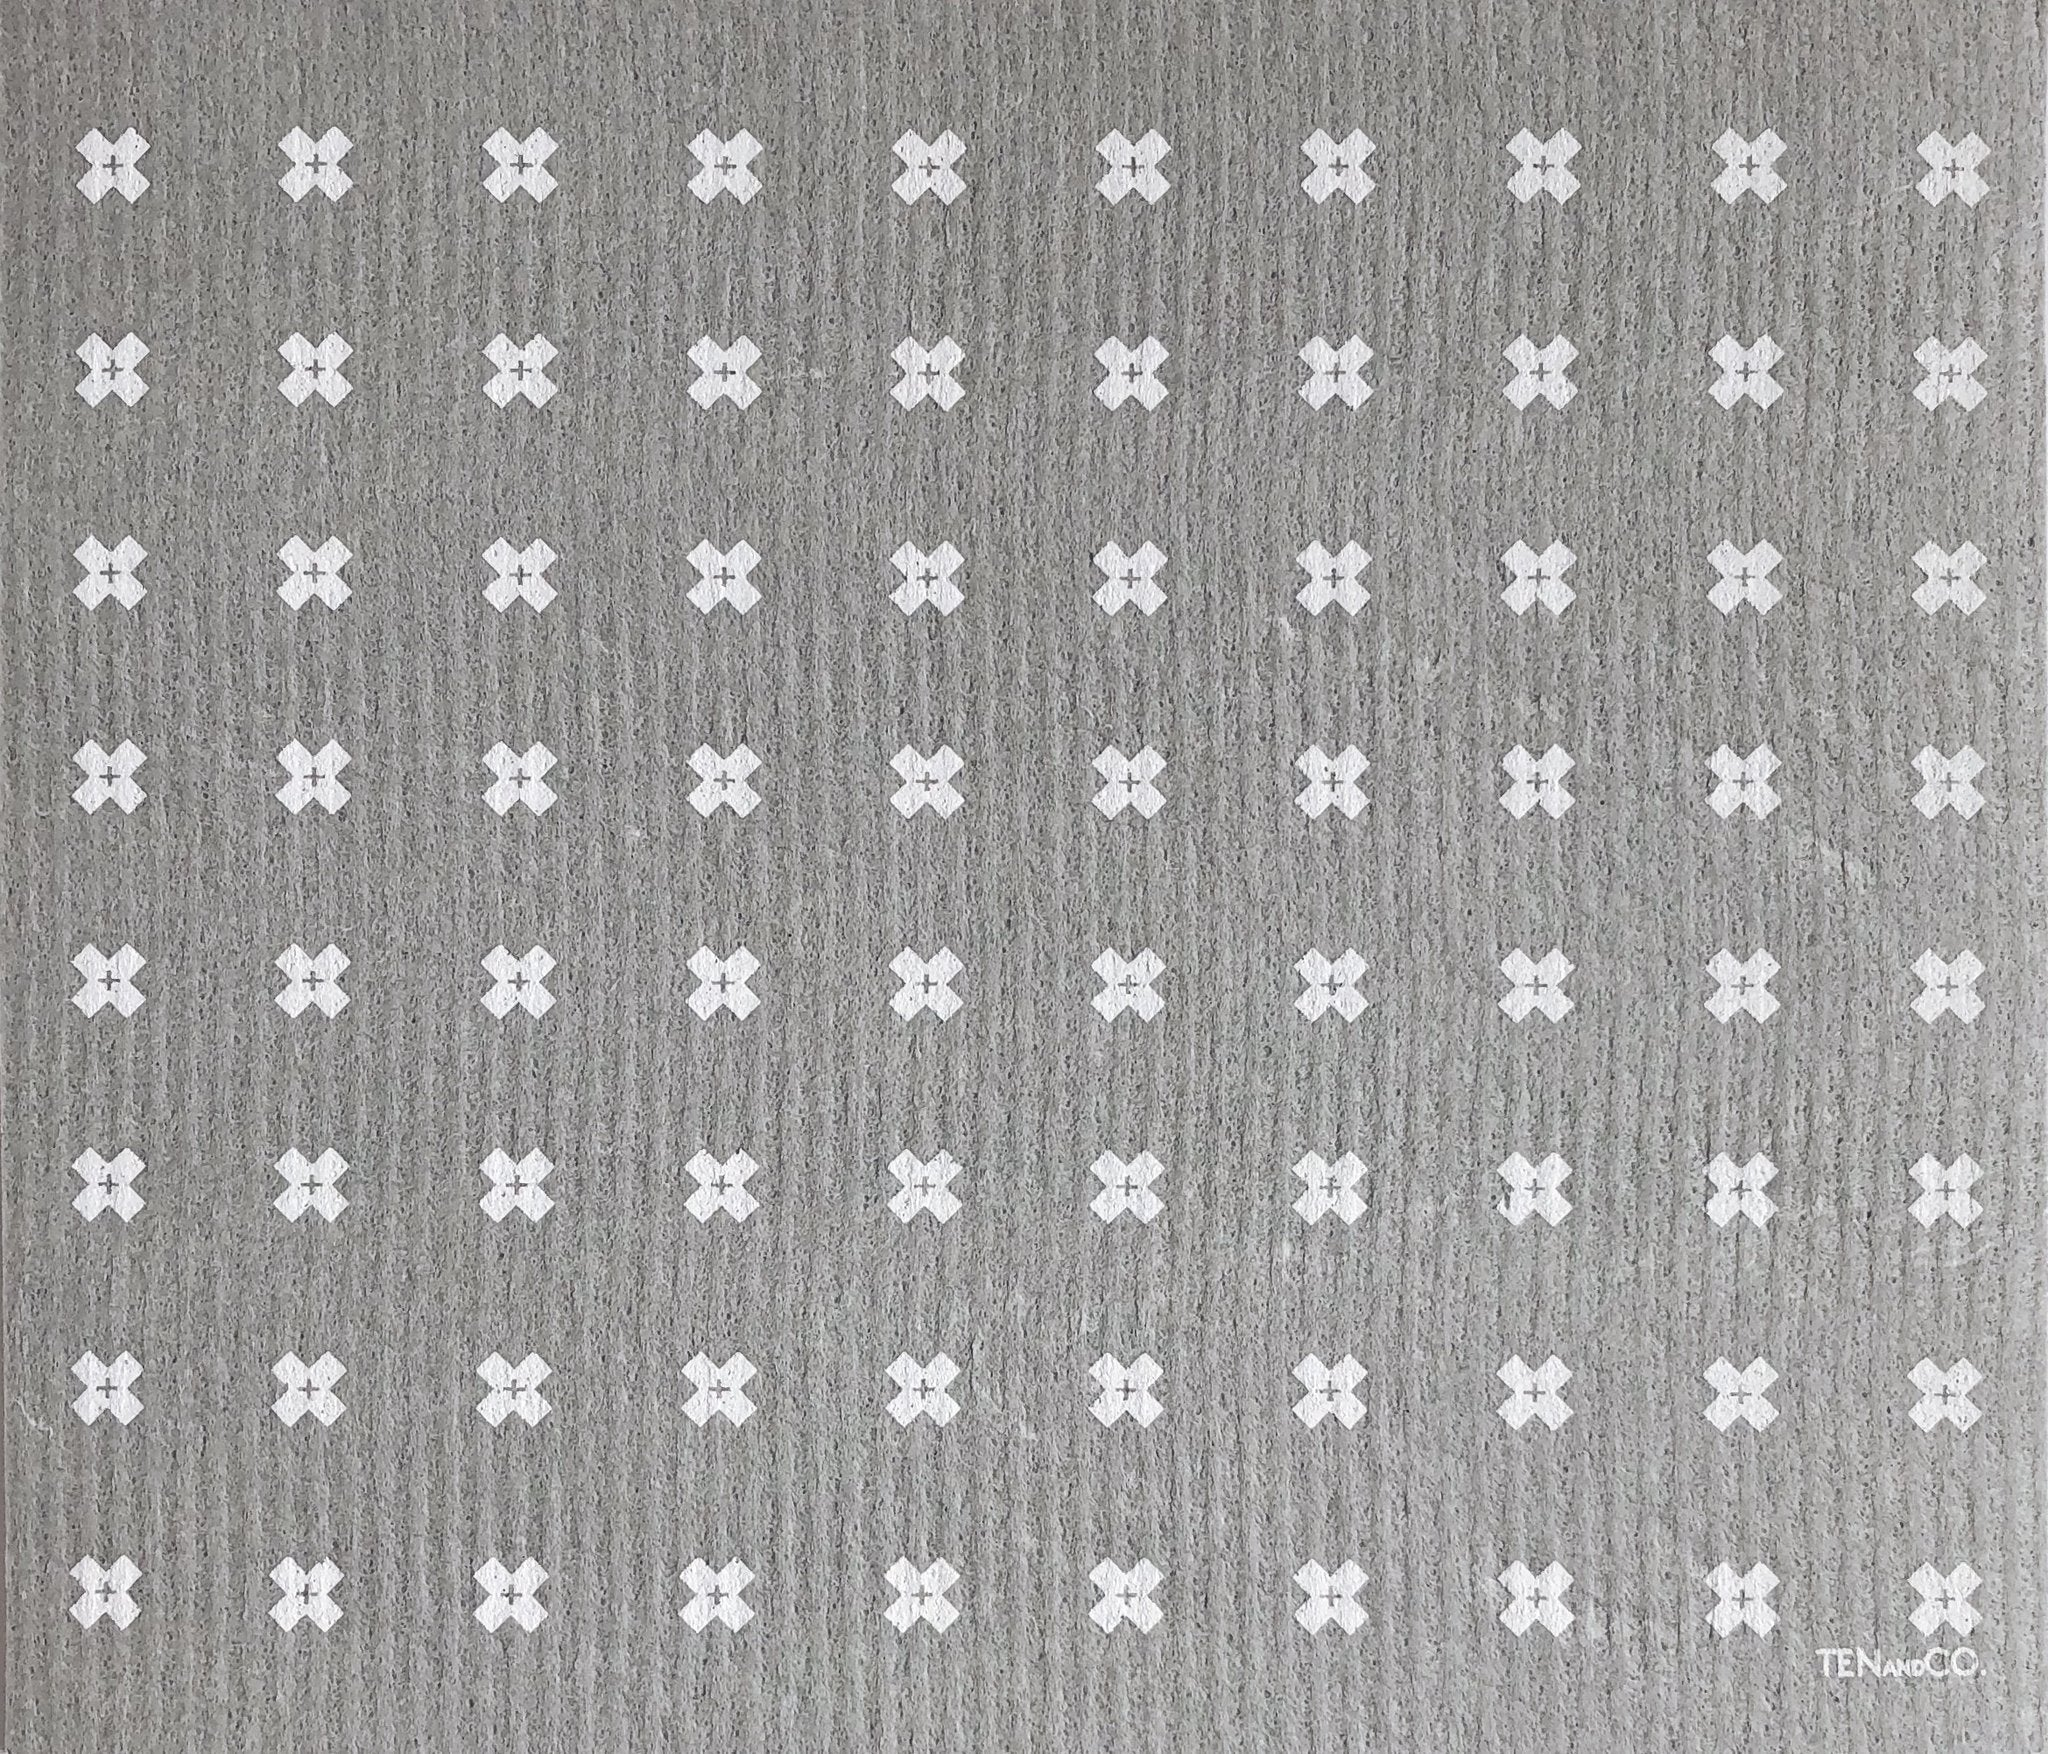 white cross swedish cellulose sponge cloth